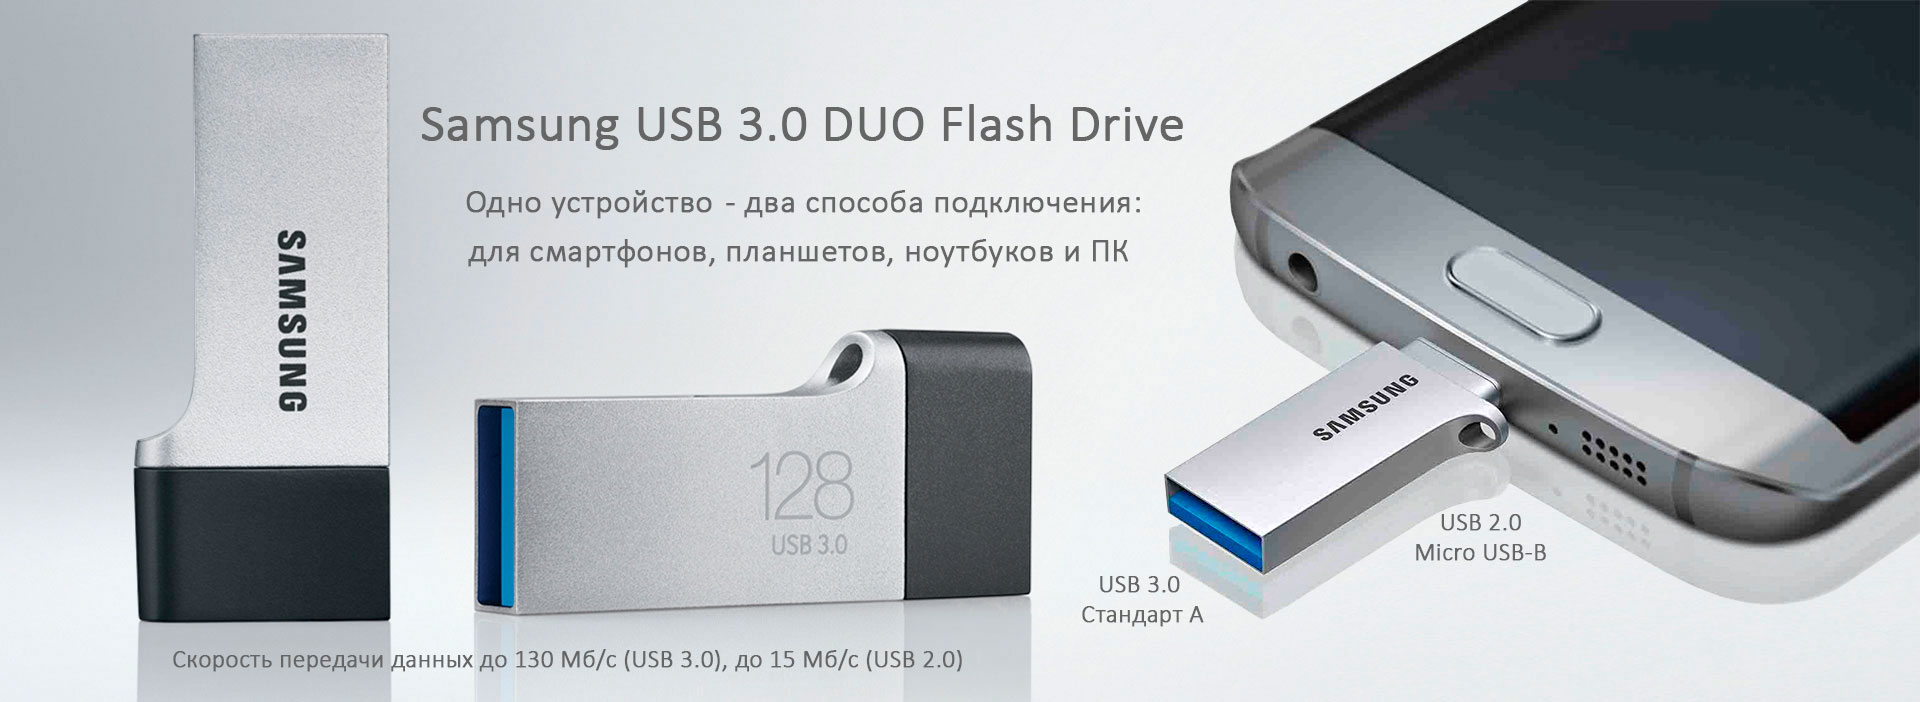 Samsung-128gb-duo-view-1